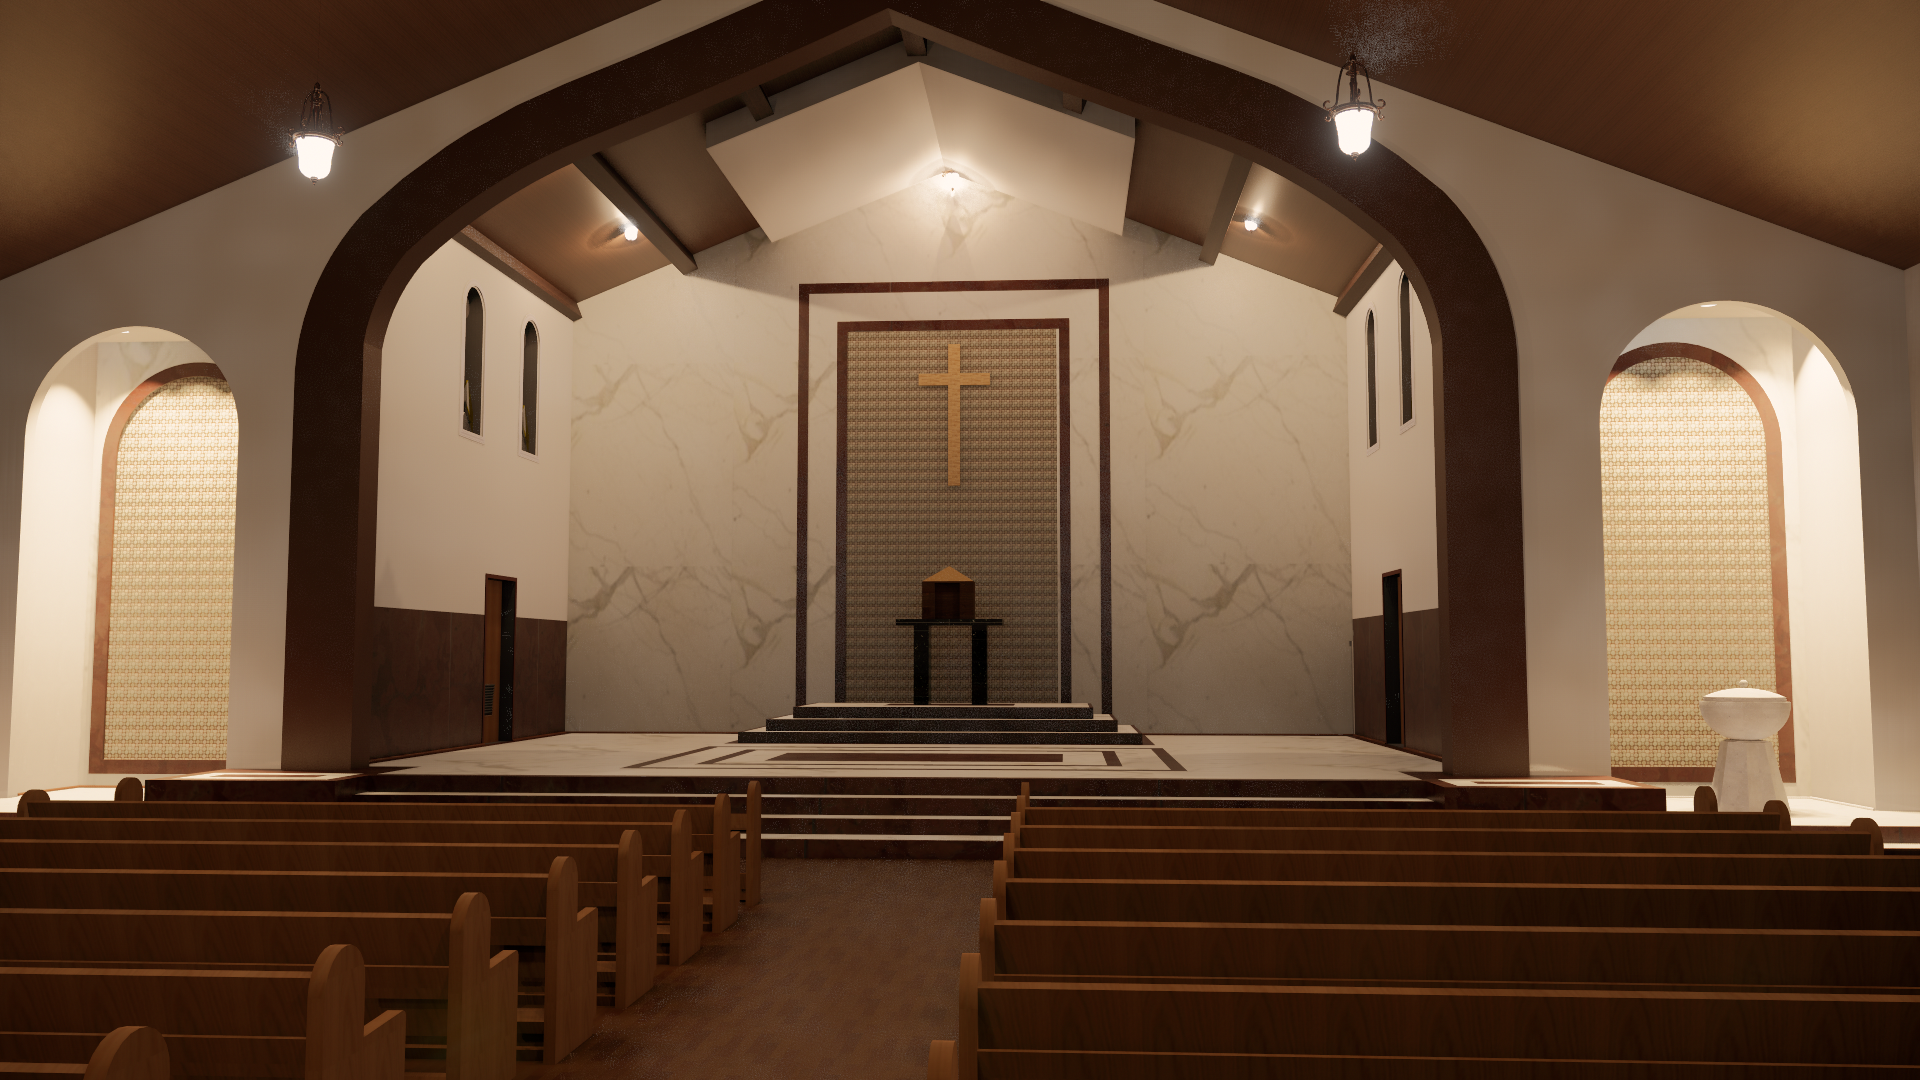 ViewfromPews_8.13.19.png